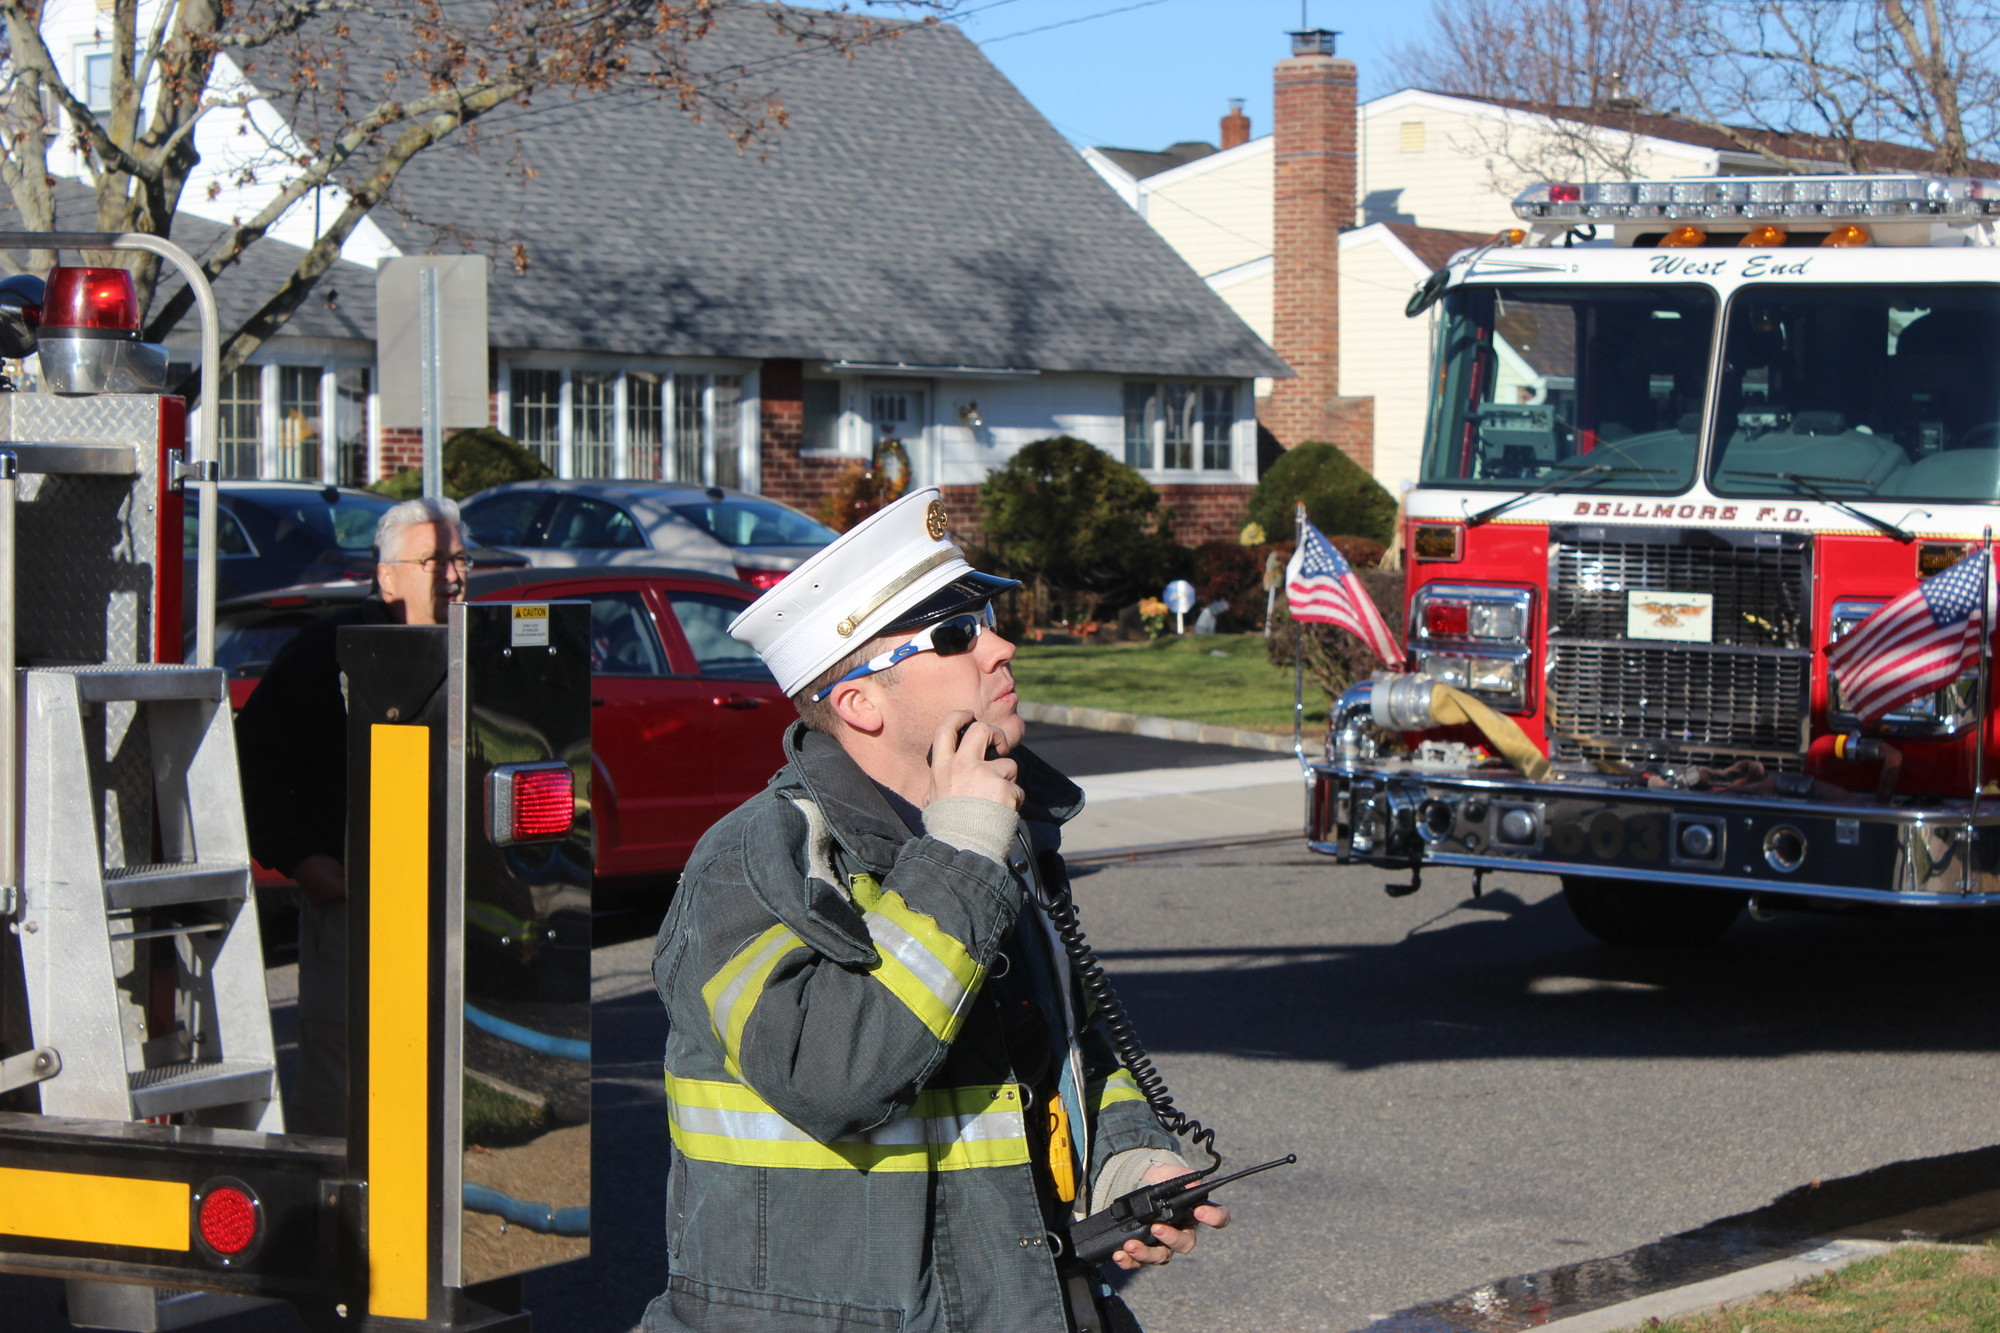 Christopher O�Brien, who served as Bellmore�s chief last year, directed operations while firefighters extinguished a blaze on Belmill Road in November 2013.